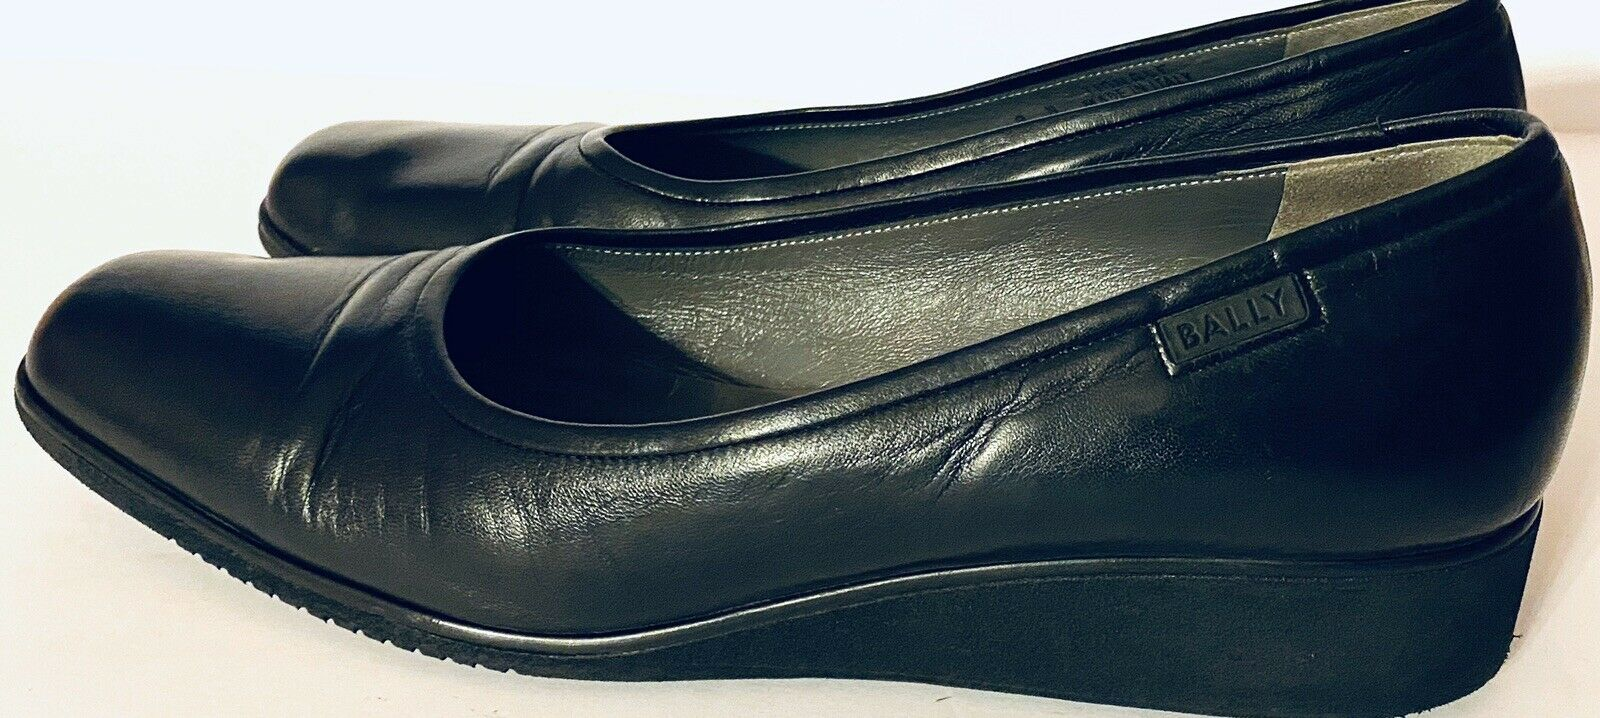 Bally Italy Women's Size 9N Tignale Black Leather Low Wedge Heel Comfort Shoes